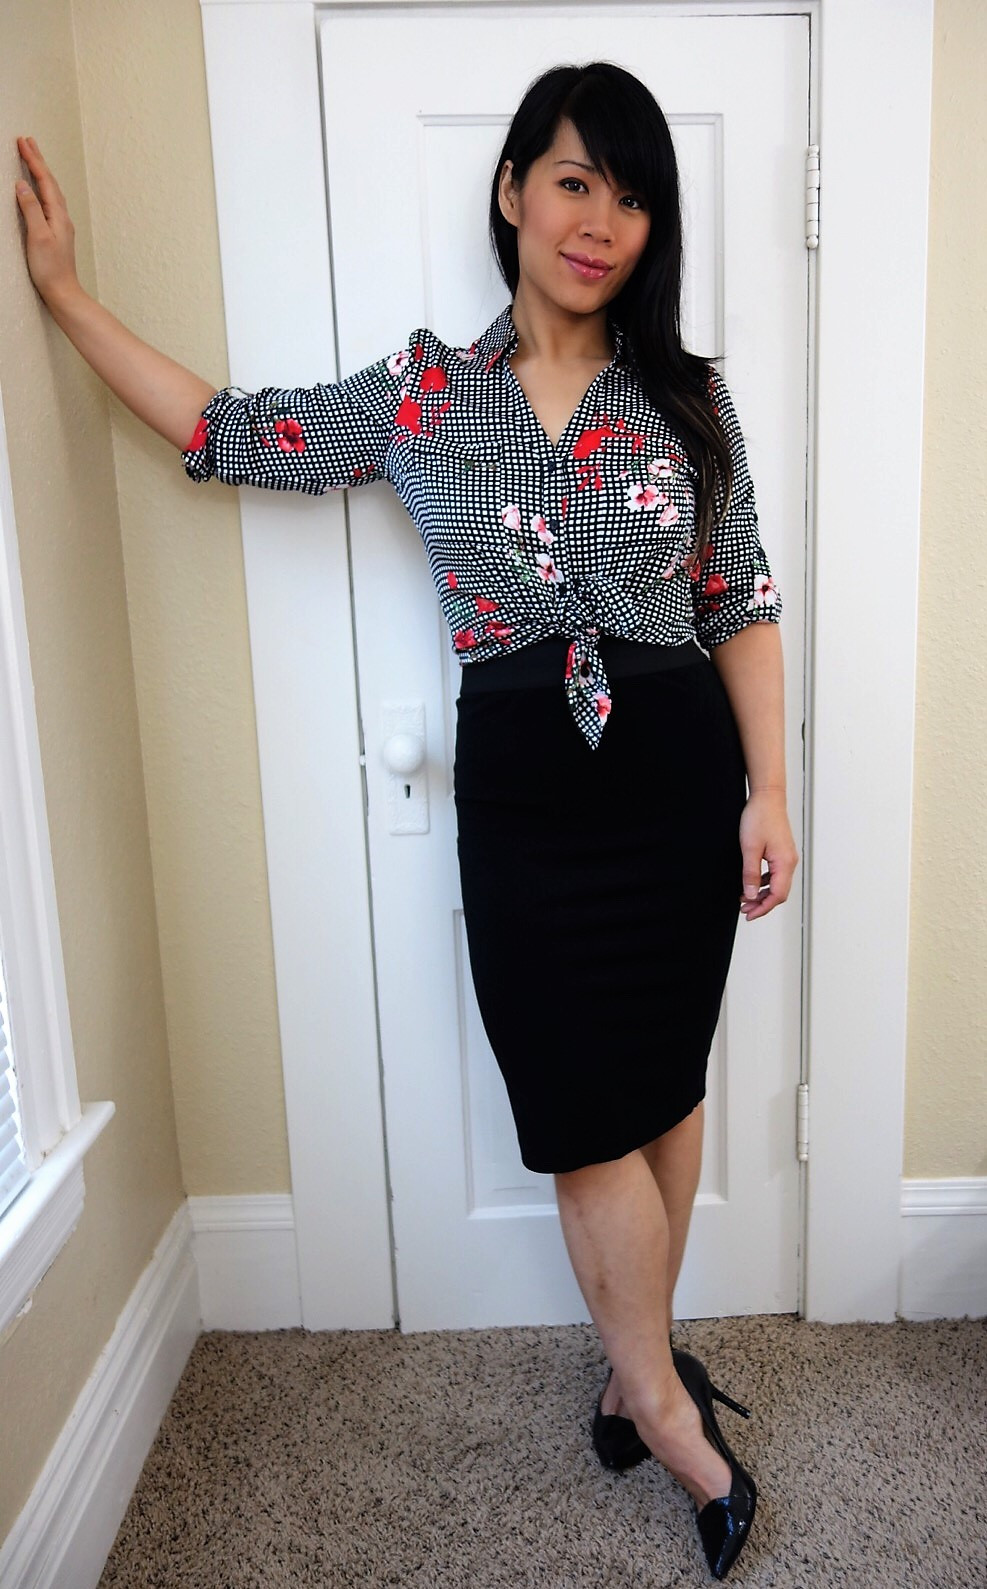 Kat wearing patterned portofino blouse